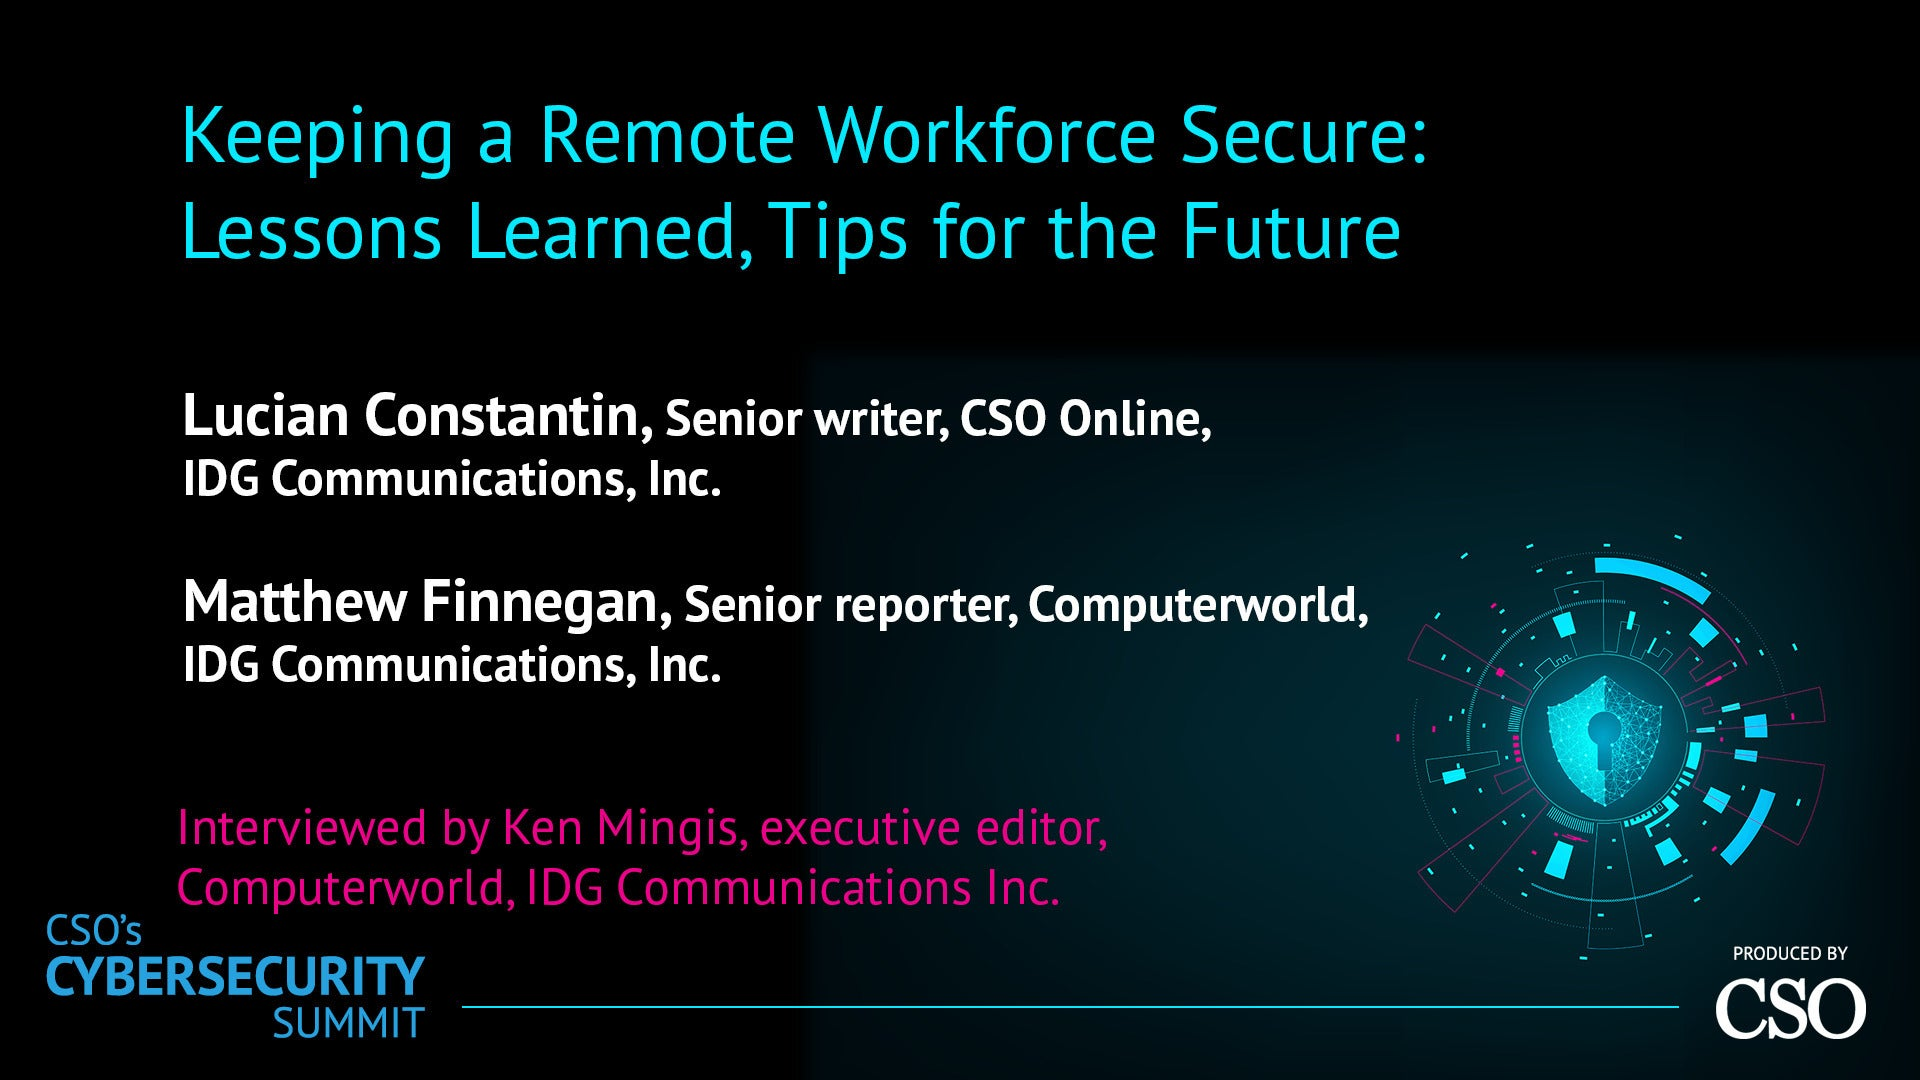 Keeping a remote workforce secure: Lessons learned, tips for the future